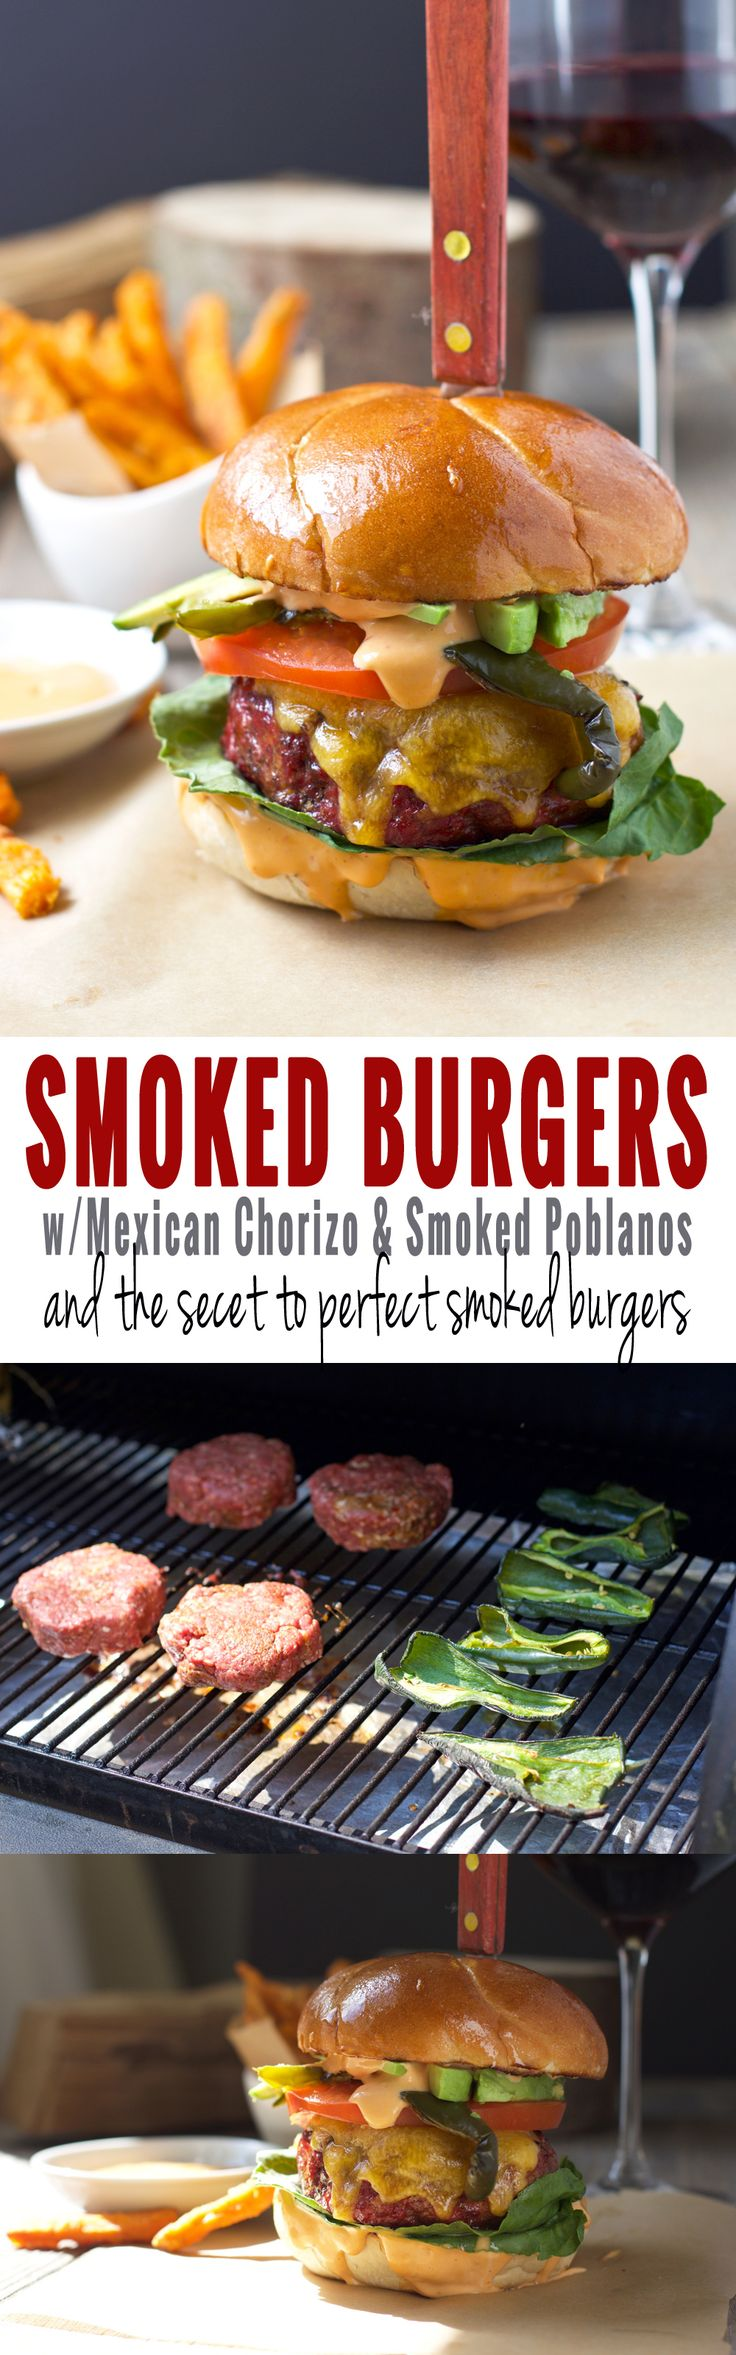 Smoked Burgers with Mexican Chorizo and Smoked Poblano Peppers, and the secret to perfect smoked burgers.